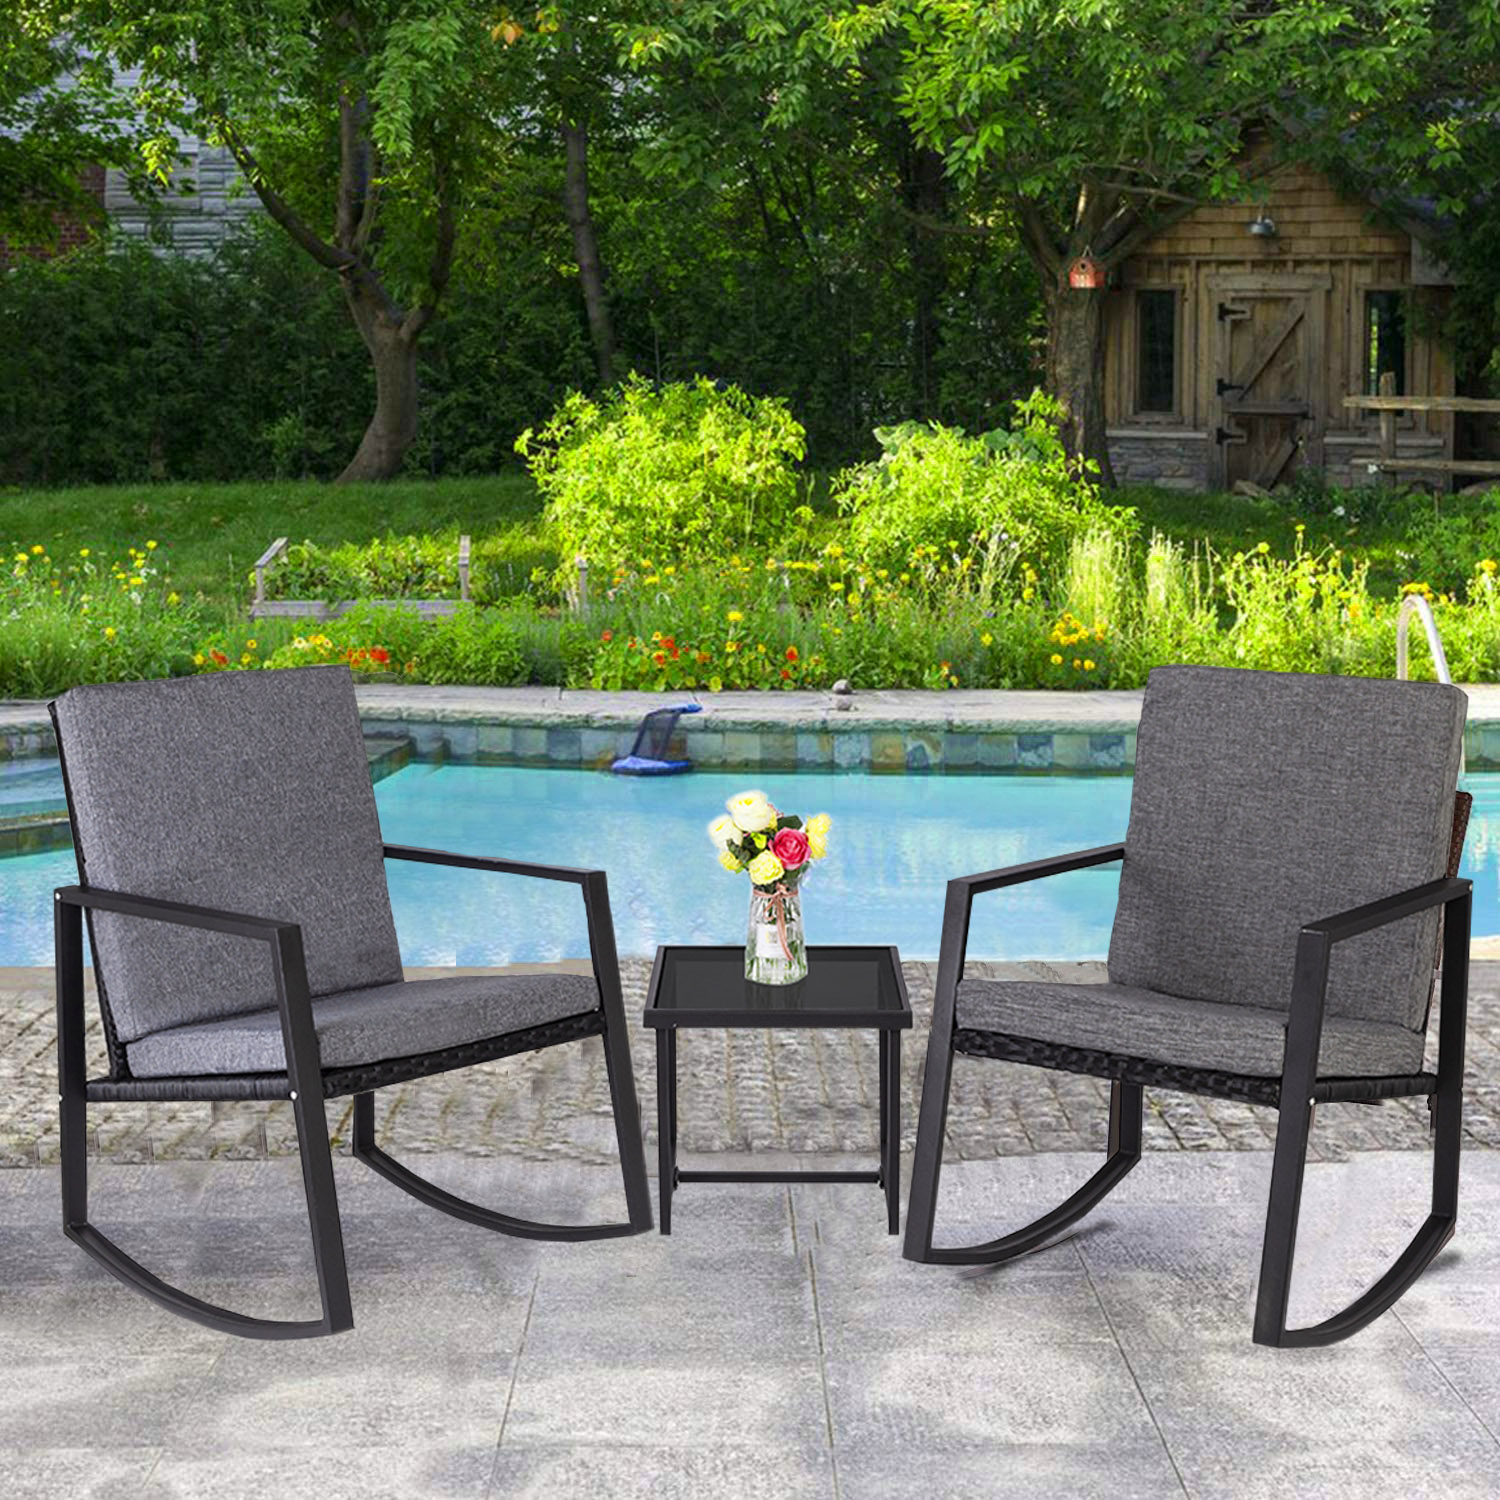 Details about  /73/'/' Porch Swing Frame Metal Black Patio Garden Yard Furniture Home Decor Solid